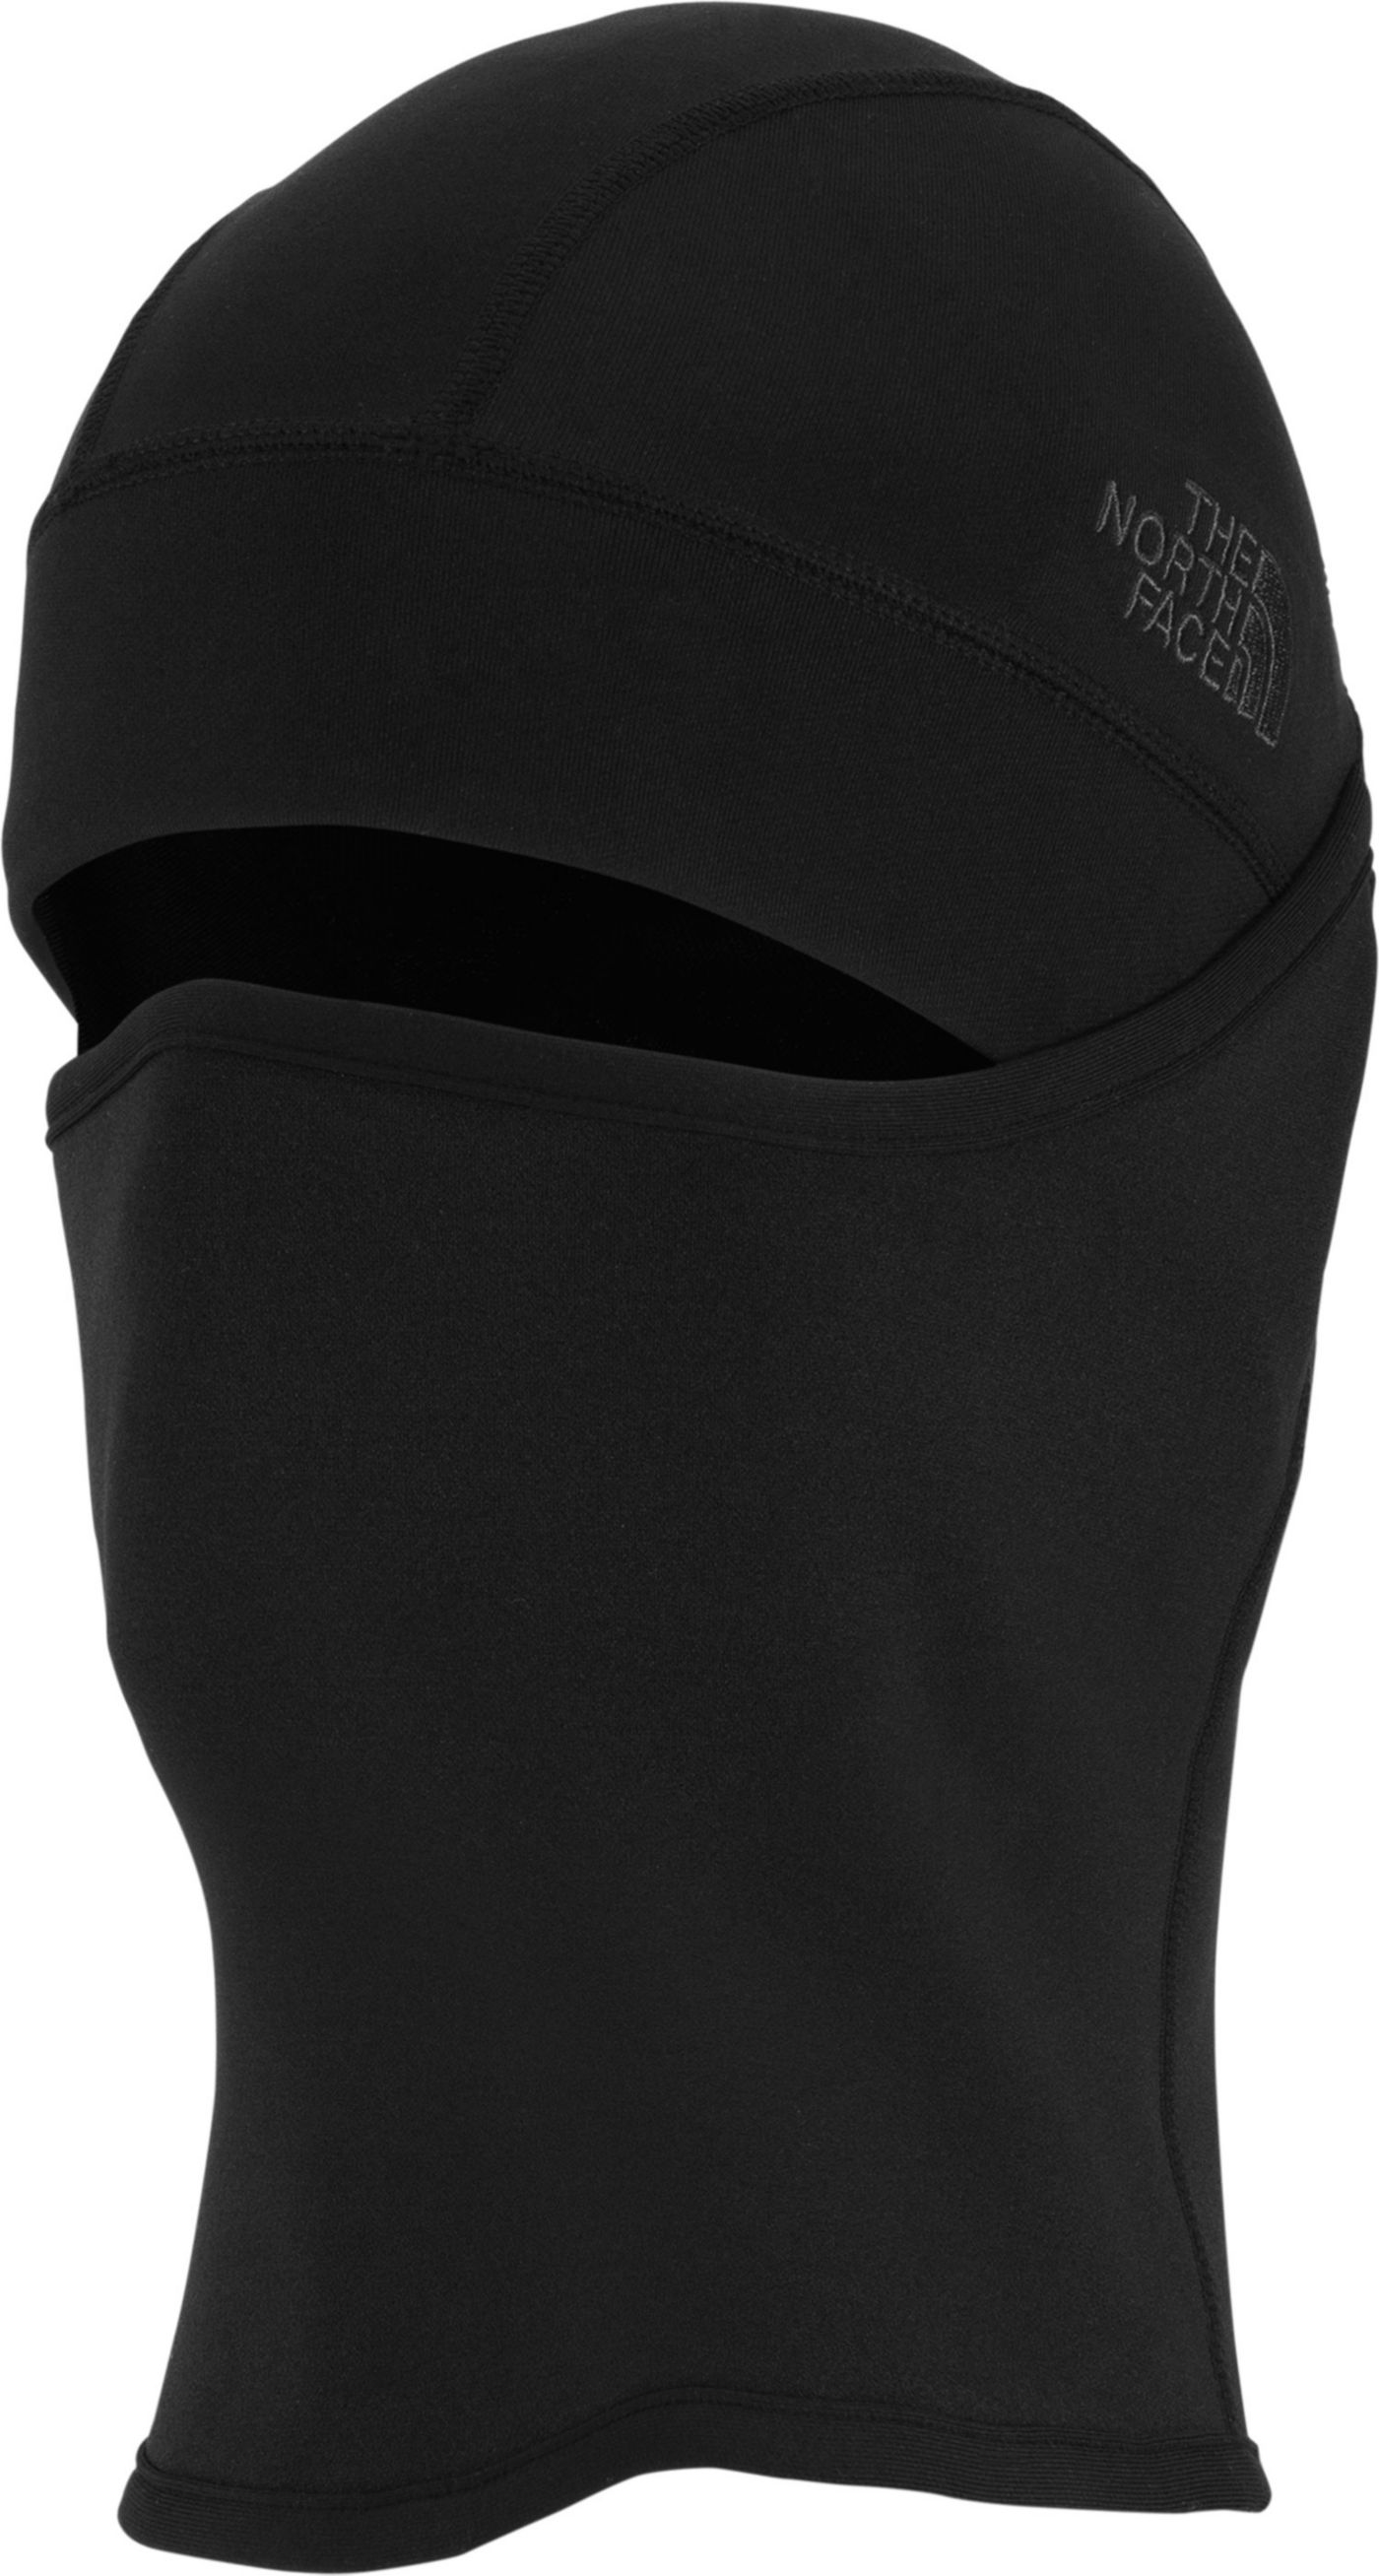 The North Face Men's Underballa Balaclava Mask